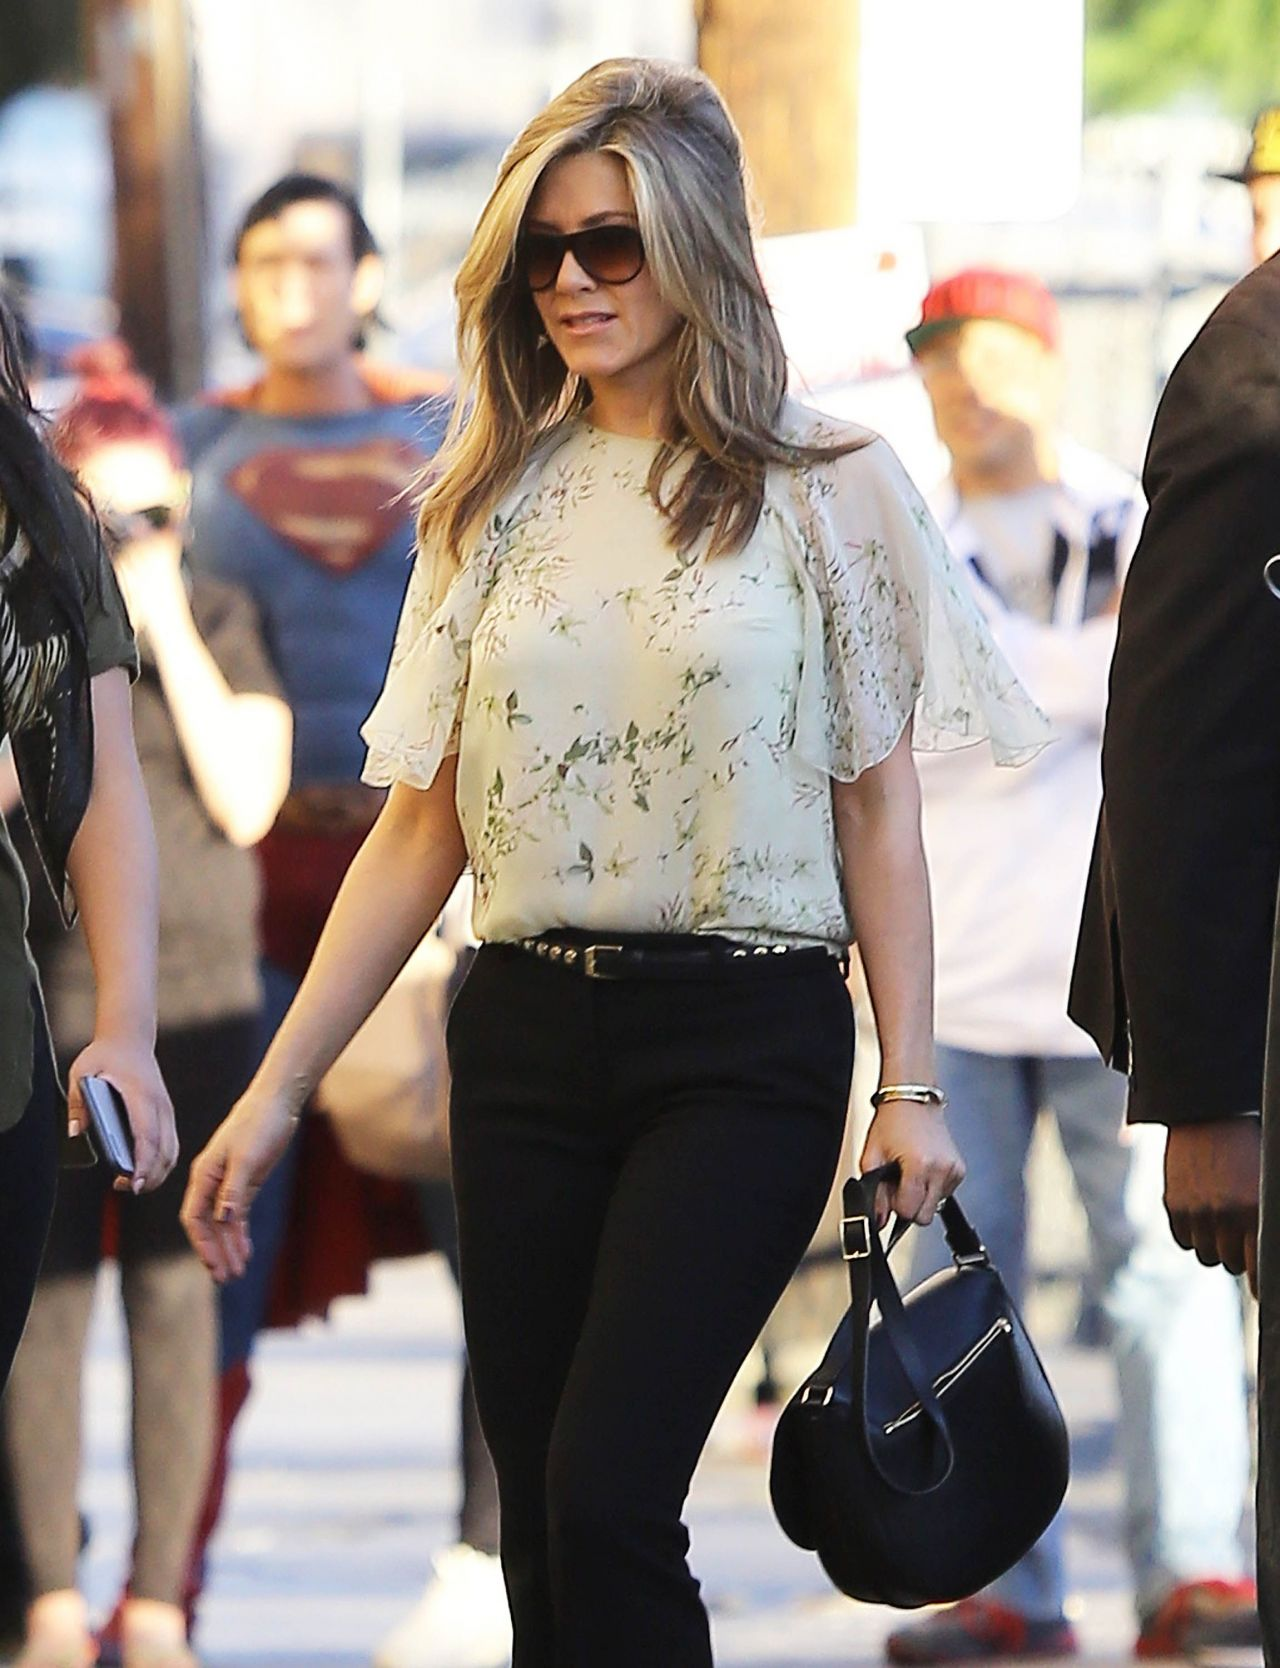 Jennifer Aniston Fashion 2014 The Image Kid Has It